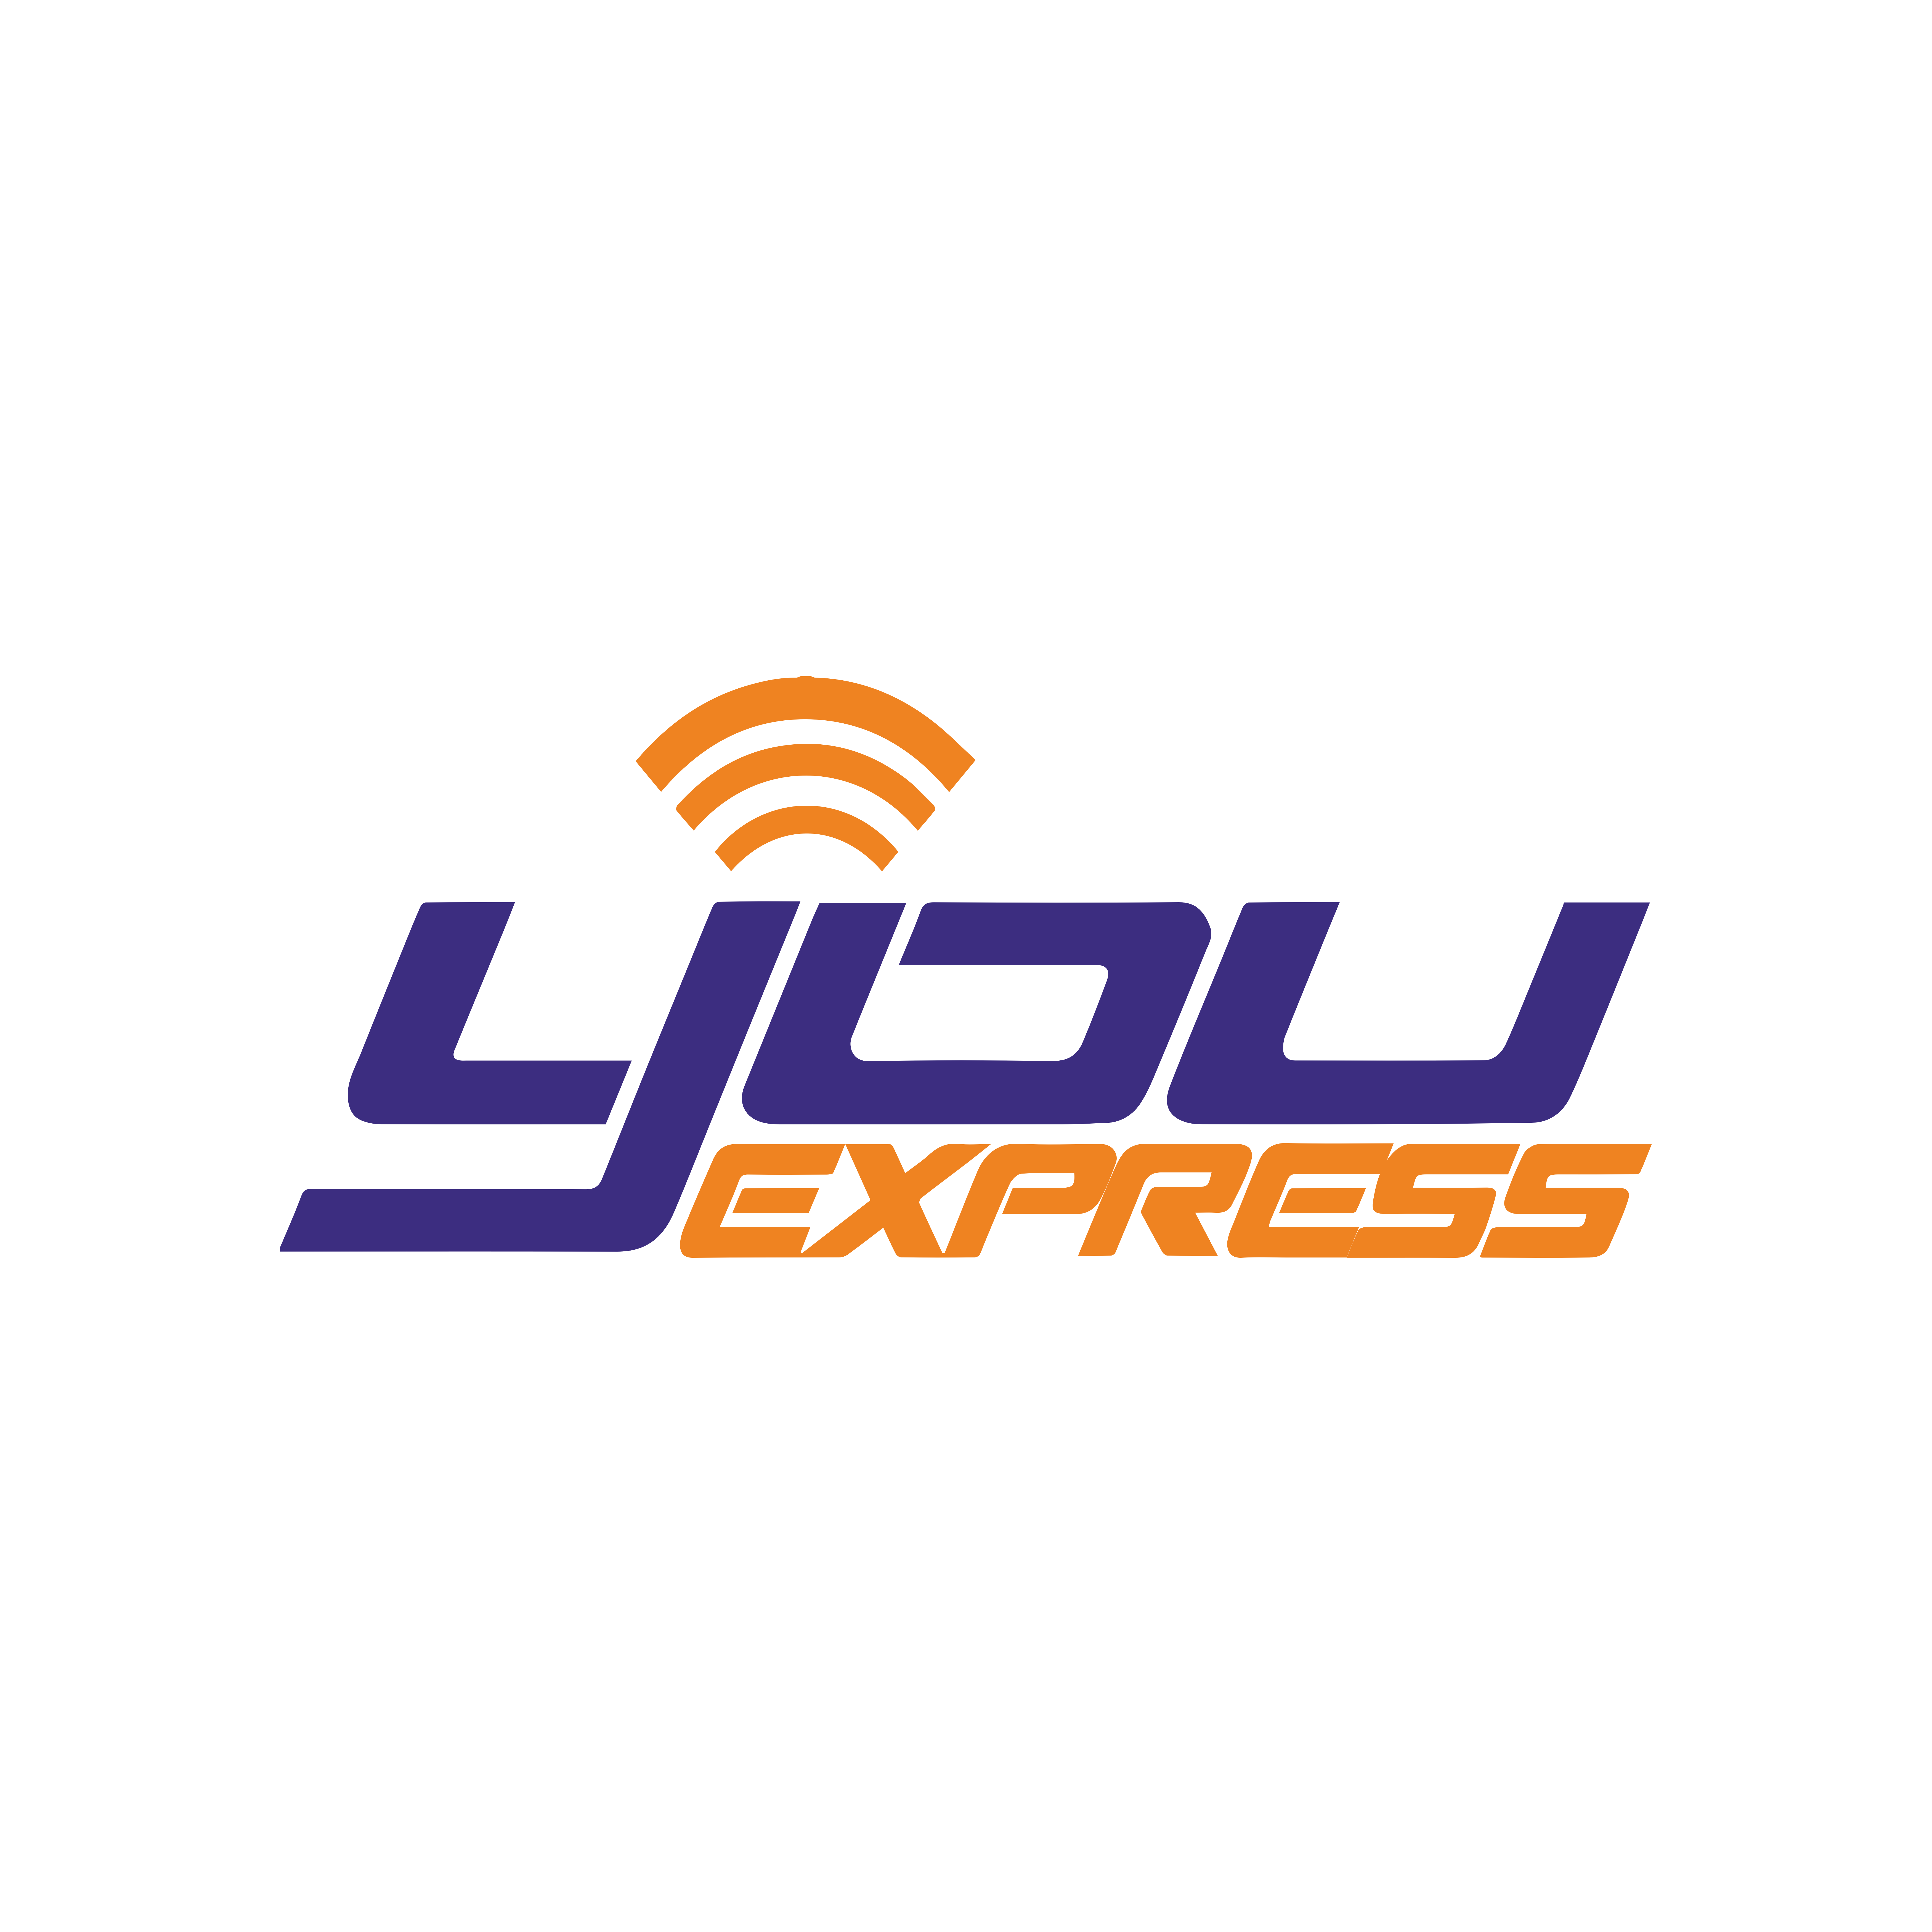 You Express International